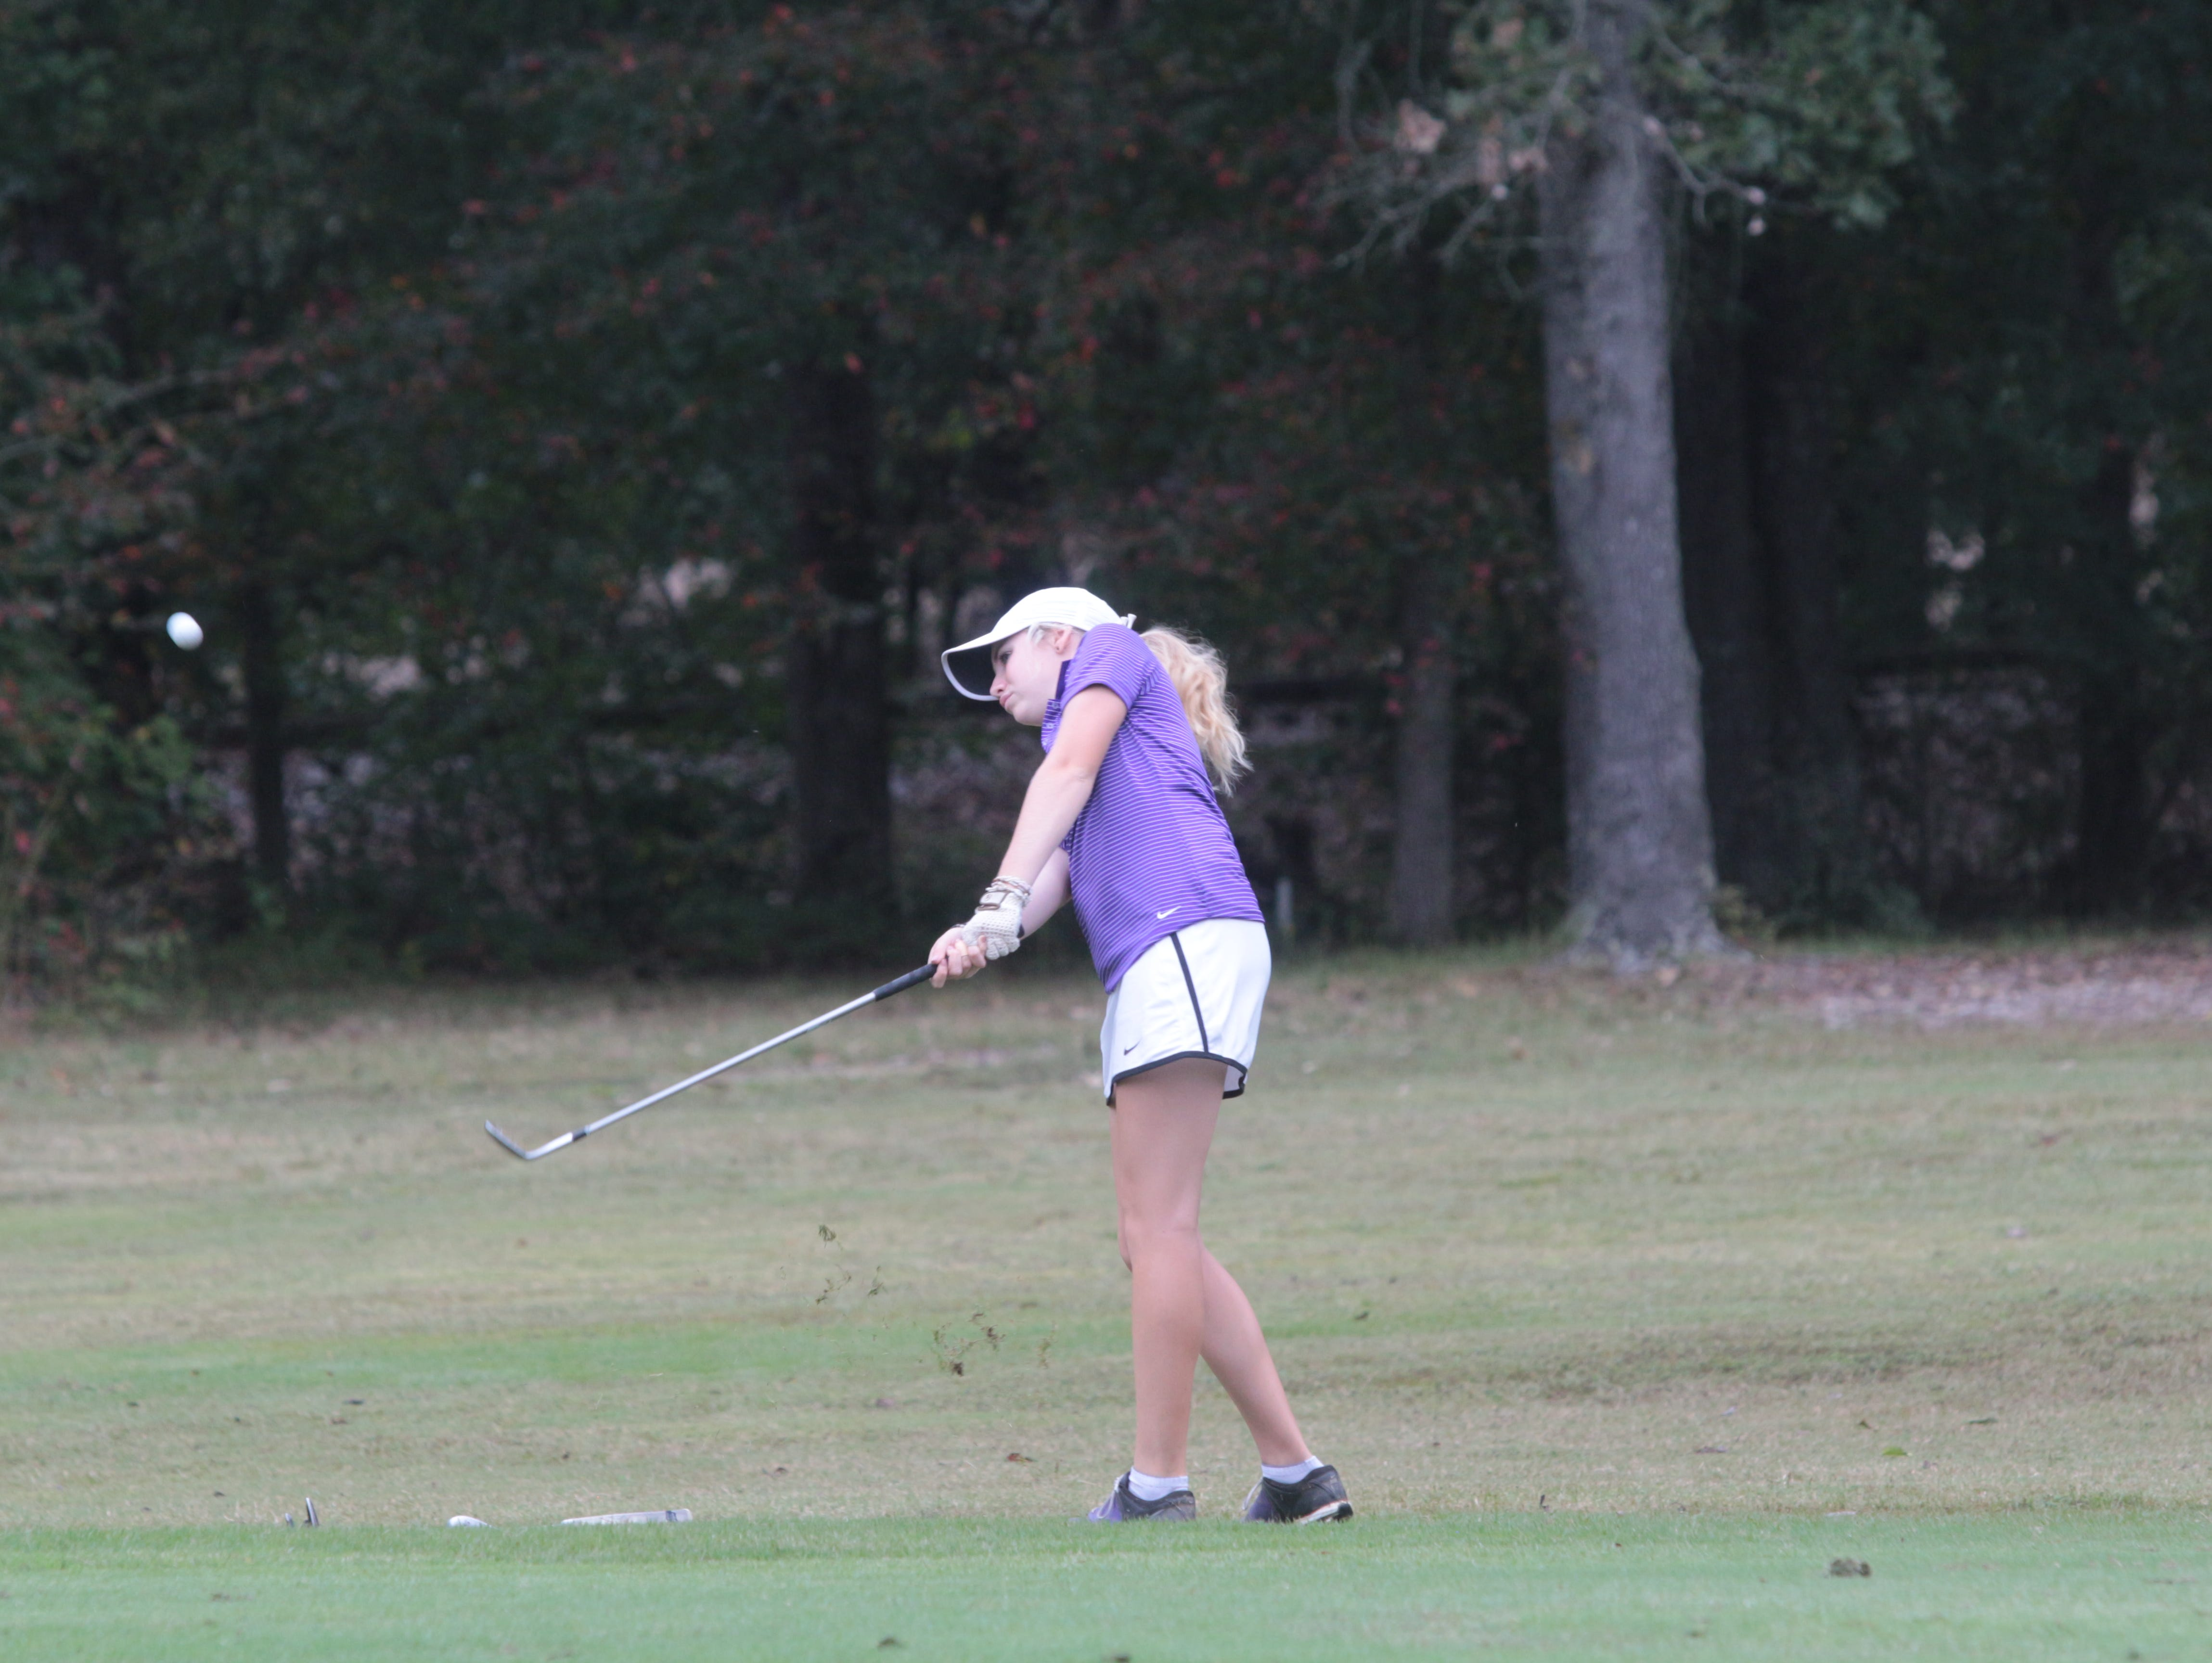 Clarksville High's Breana Smith drills her second shot on the 14th hole during the final round of the Class 3A girls state golf tournament at WillowBrook Golf Course in Manchester Wednesday.